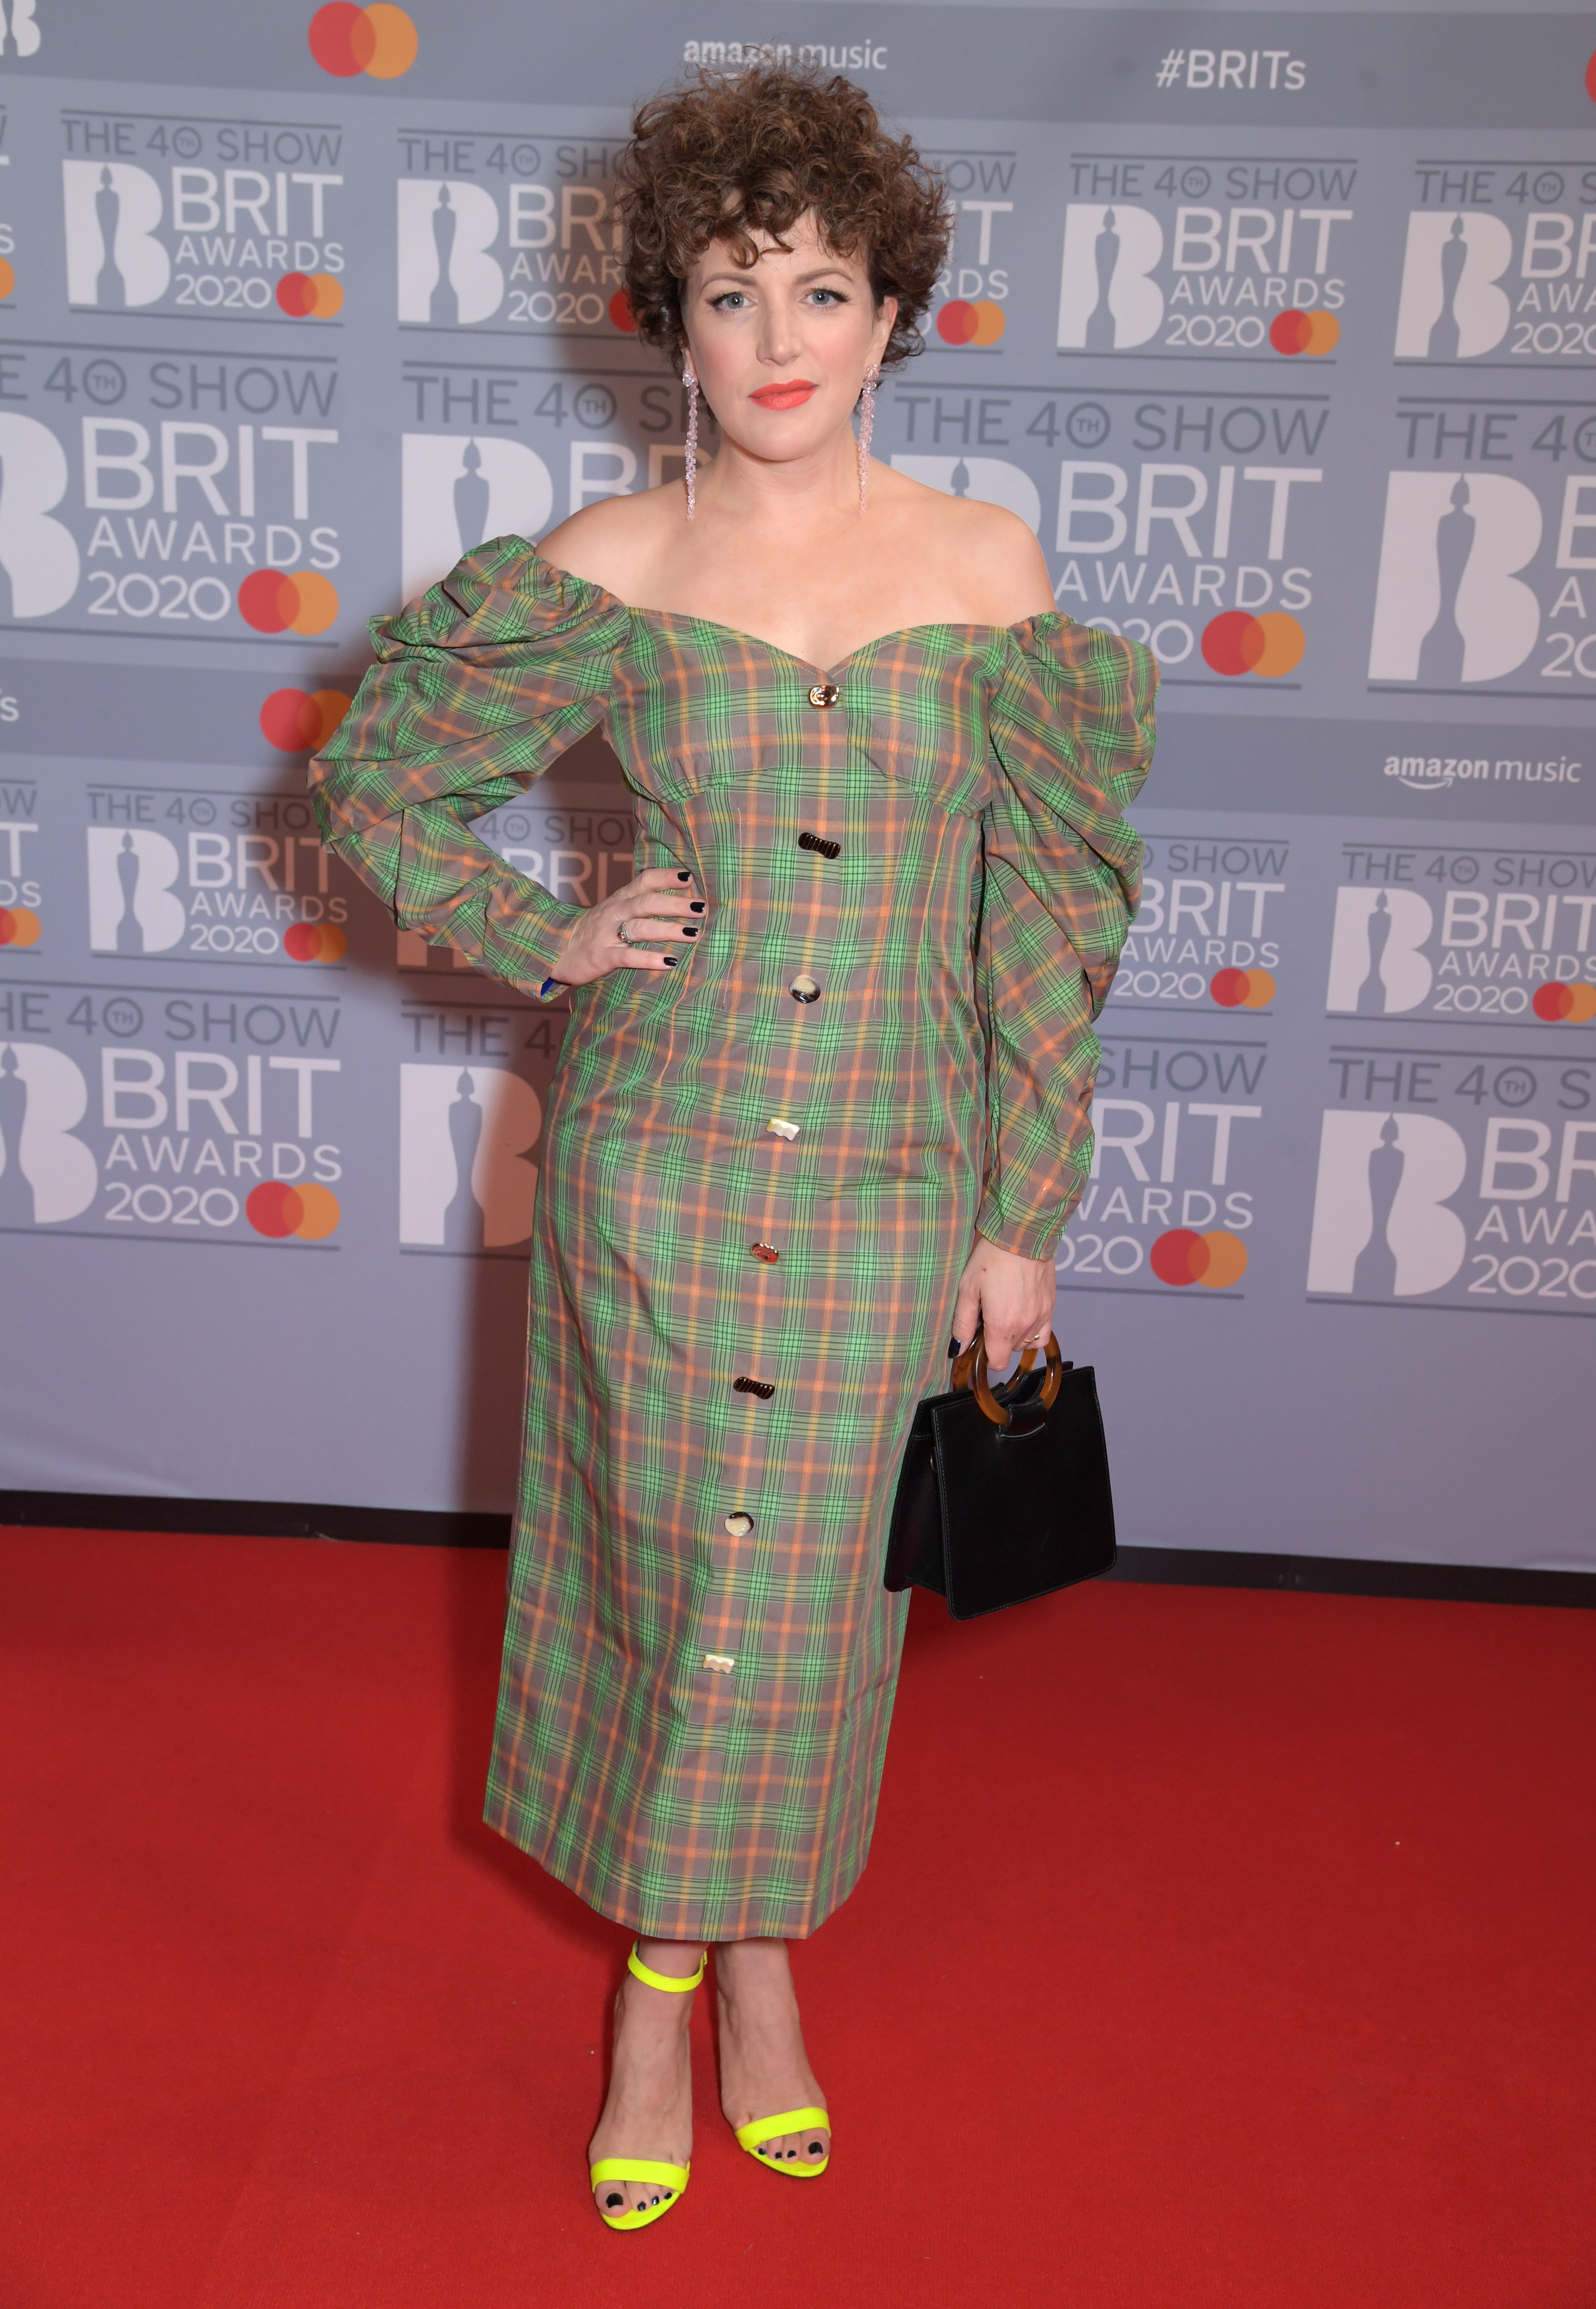 Annie Mac attends The BRIT Awards 2020 at The O2 Arena on February 18, 2020 in London, England.  (Photo by David M. Benett/Dave Benett/Getty Images)